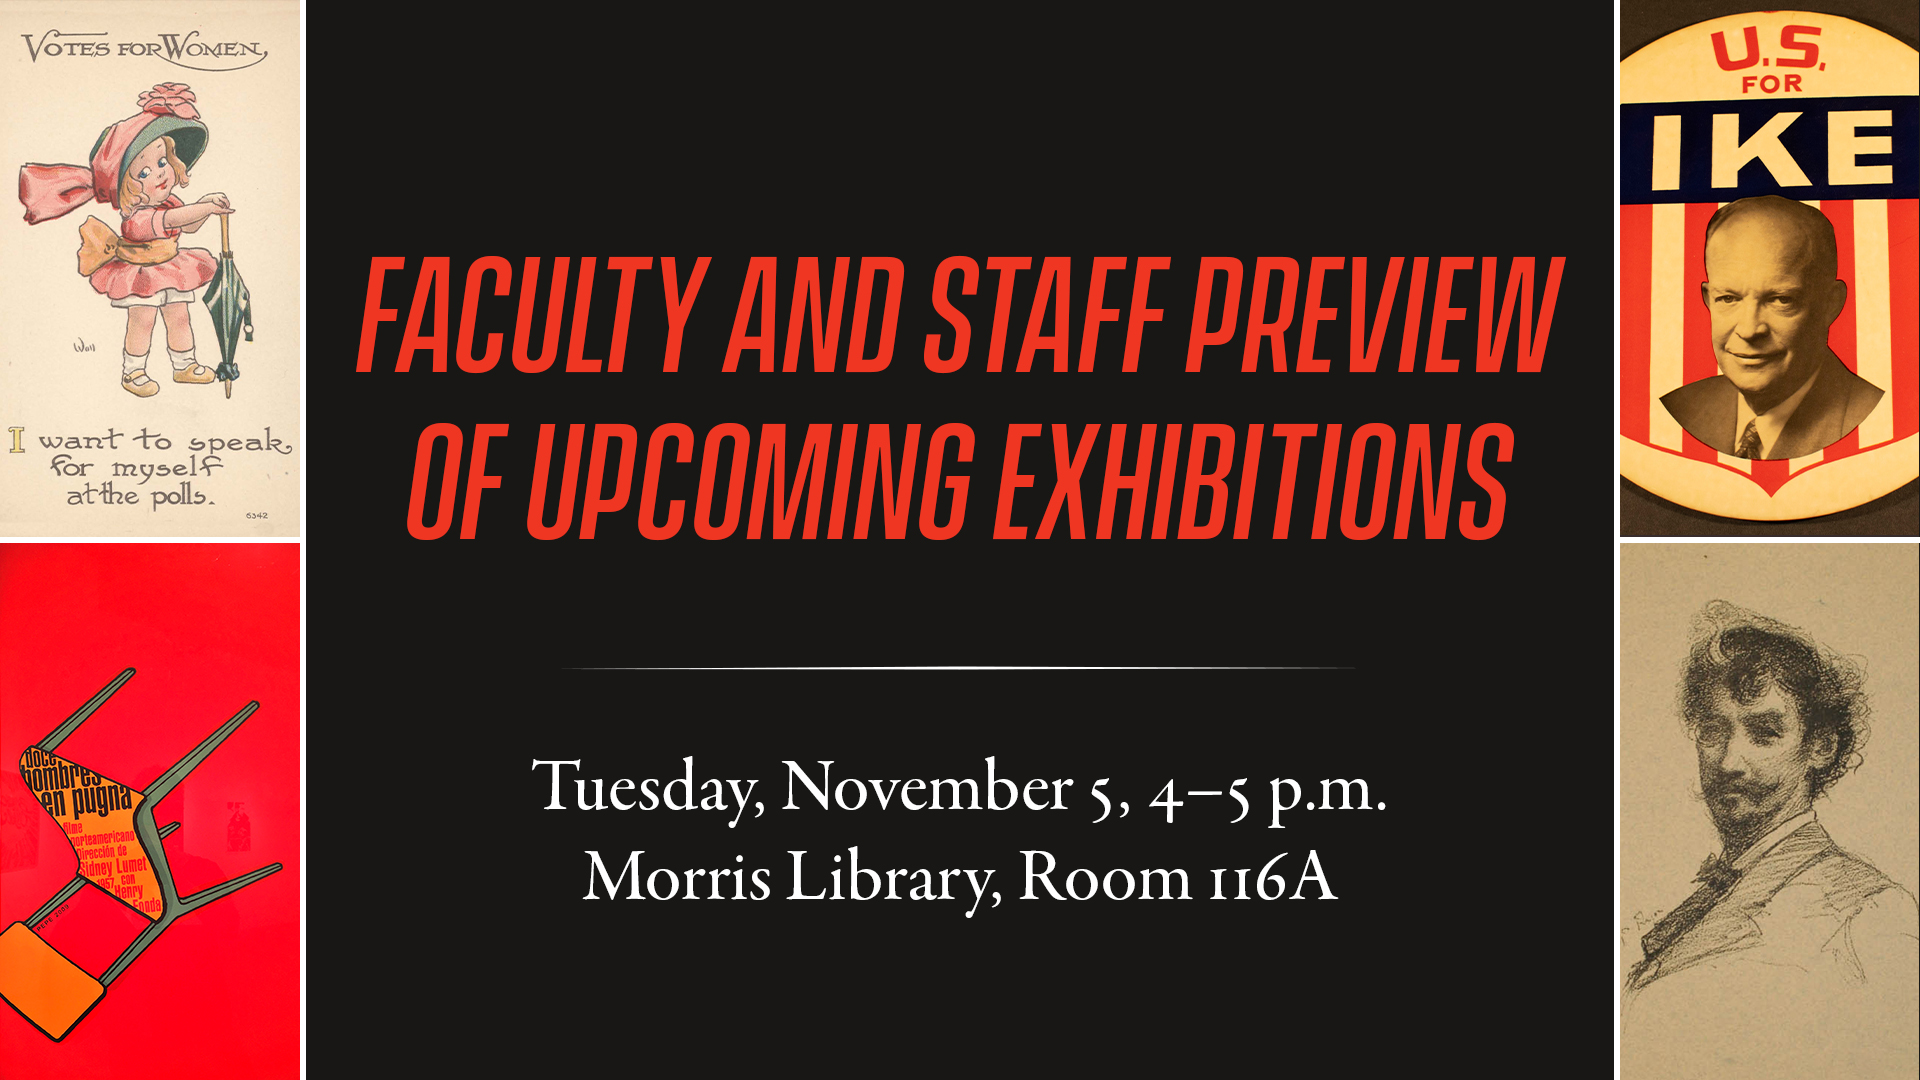 Promotional image for Faculty Preview of upcoming exhibitions